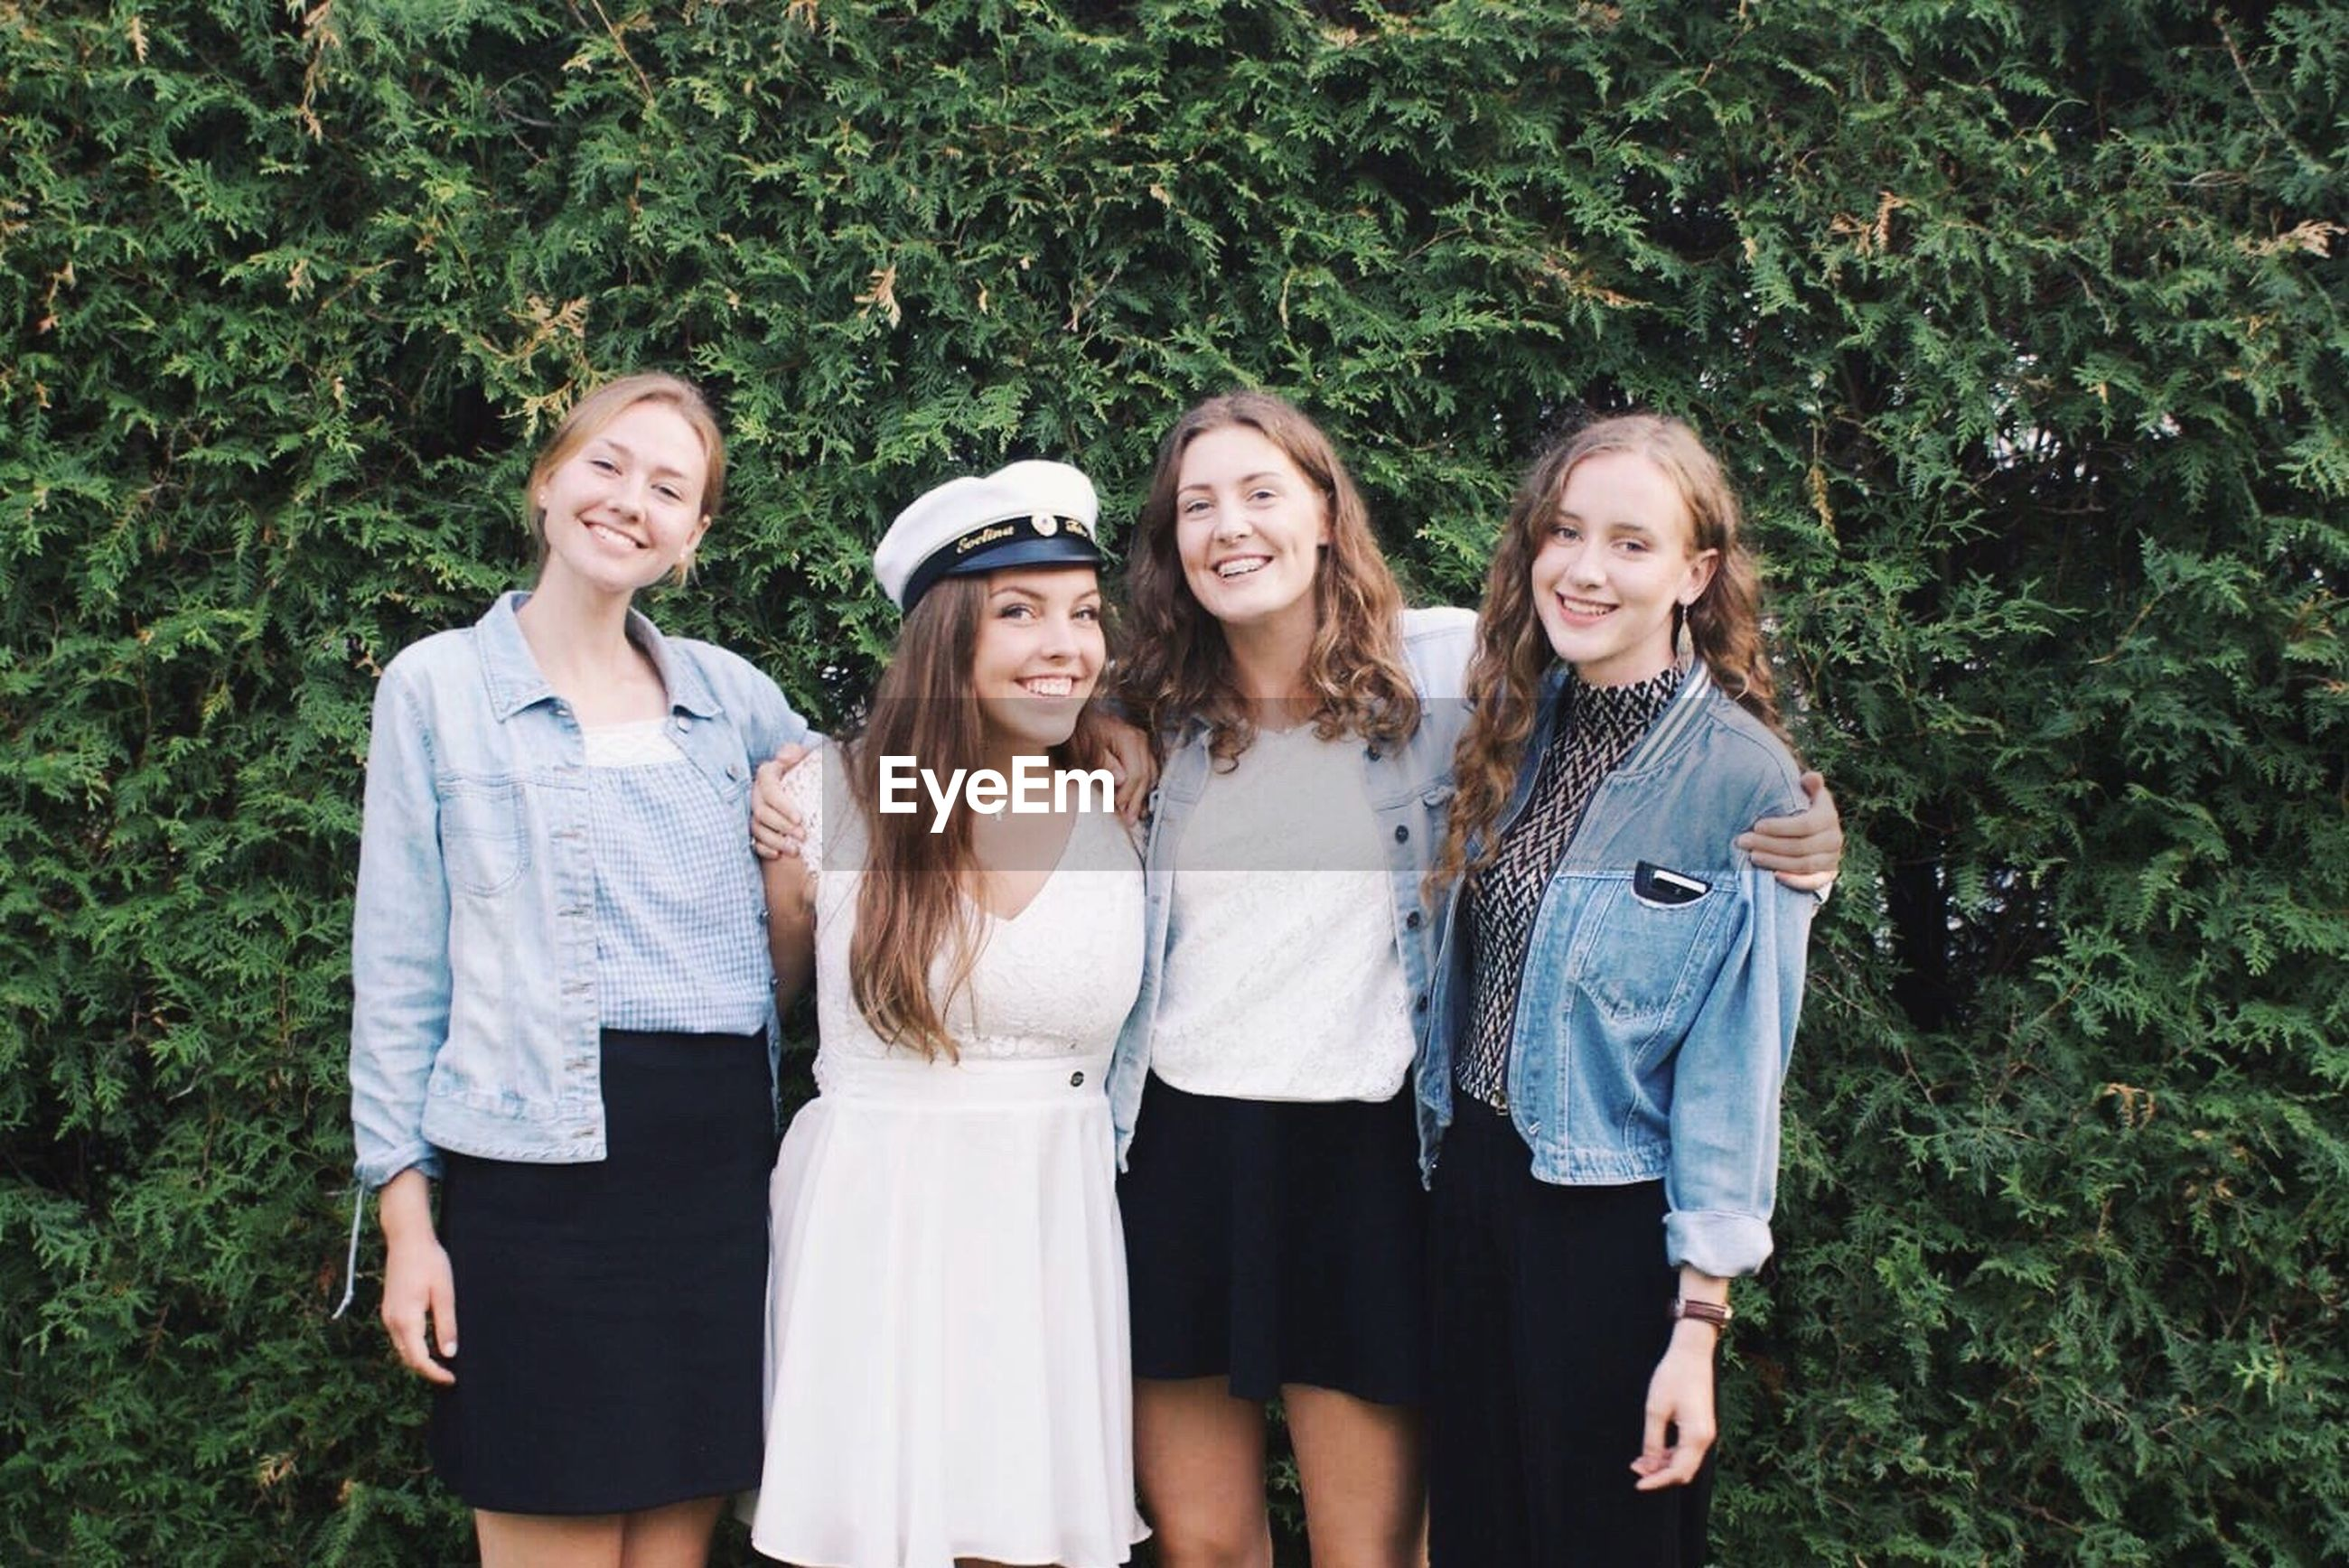 togetherness, casual clothing, three quarter length, looking at camera, young women, front view, portrait, friendship, smiling, day, long hair, outdoors, lifestyles, young adult, grass, leisure activity, standing, real people, hands in pockets, nature, happiness, tree, adult, people, adults only